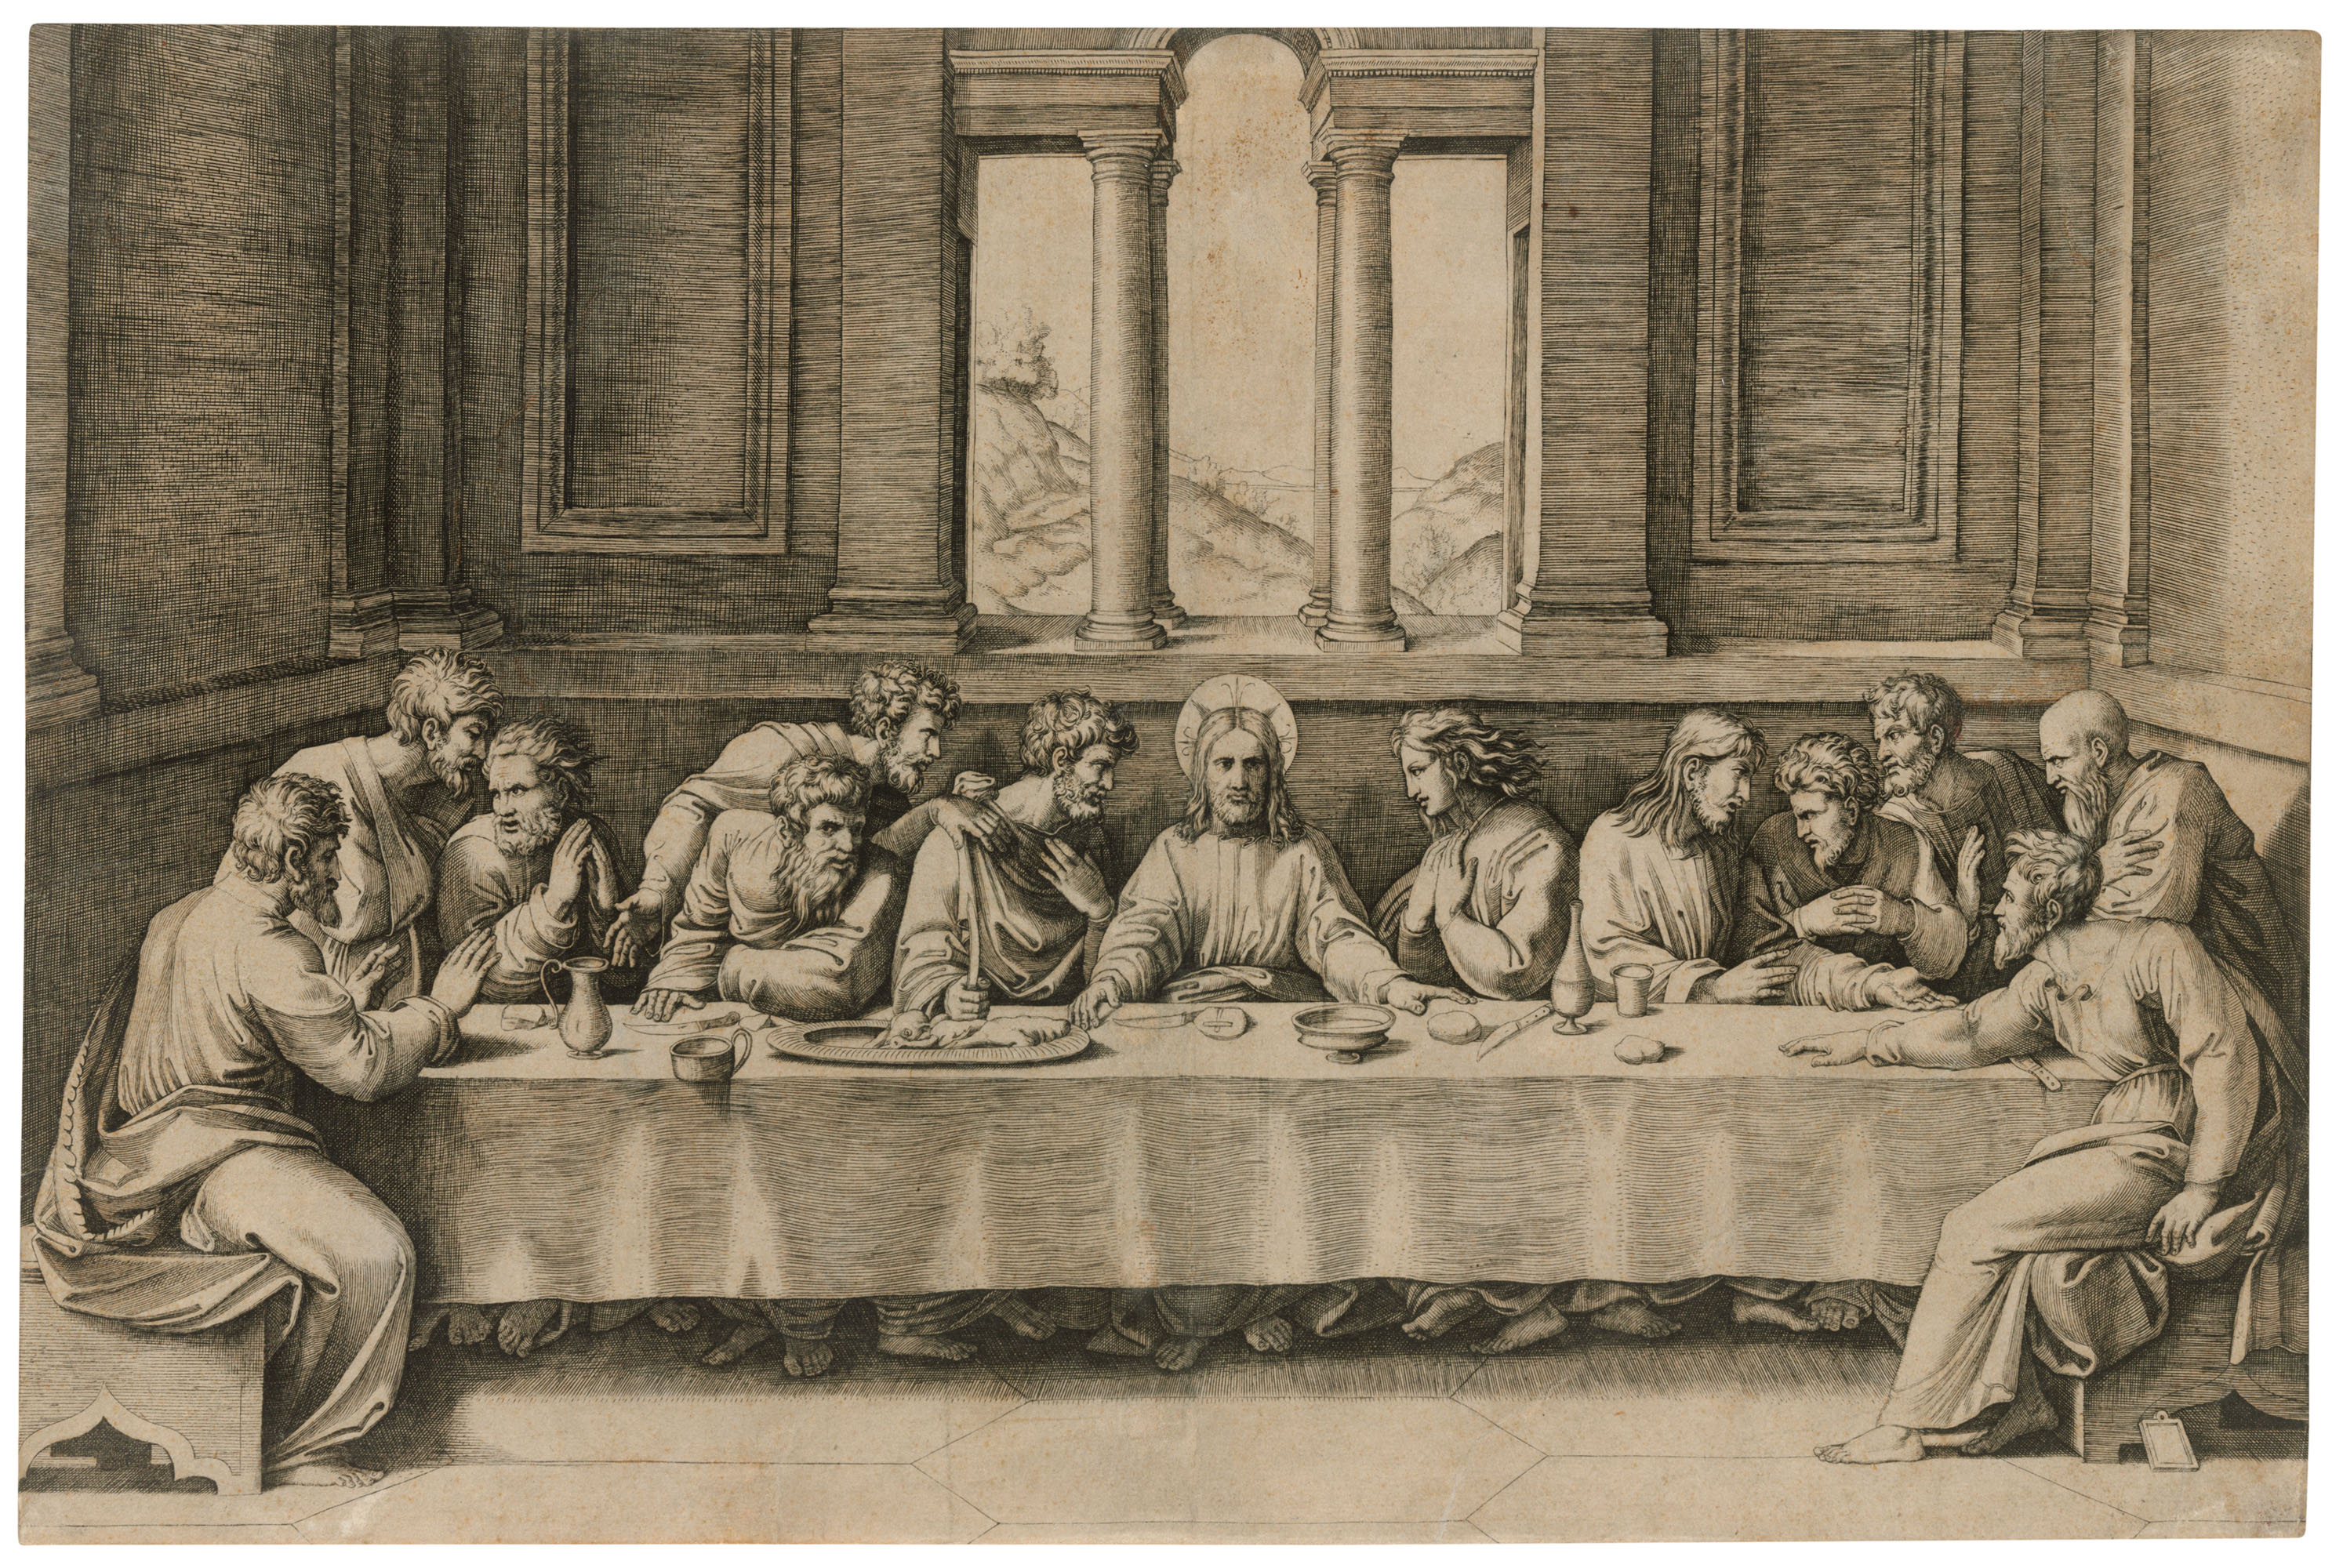 Marcantonio Raimondi (1480-1534) after Raphael (1483-1520), The Last Supper, circa 1515. Engraving on laid paper. Sheet 287 x 434 mm. Sold for £7,500 inOld Master Prints, 19-28 January 2021, Online